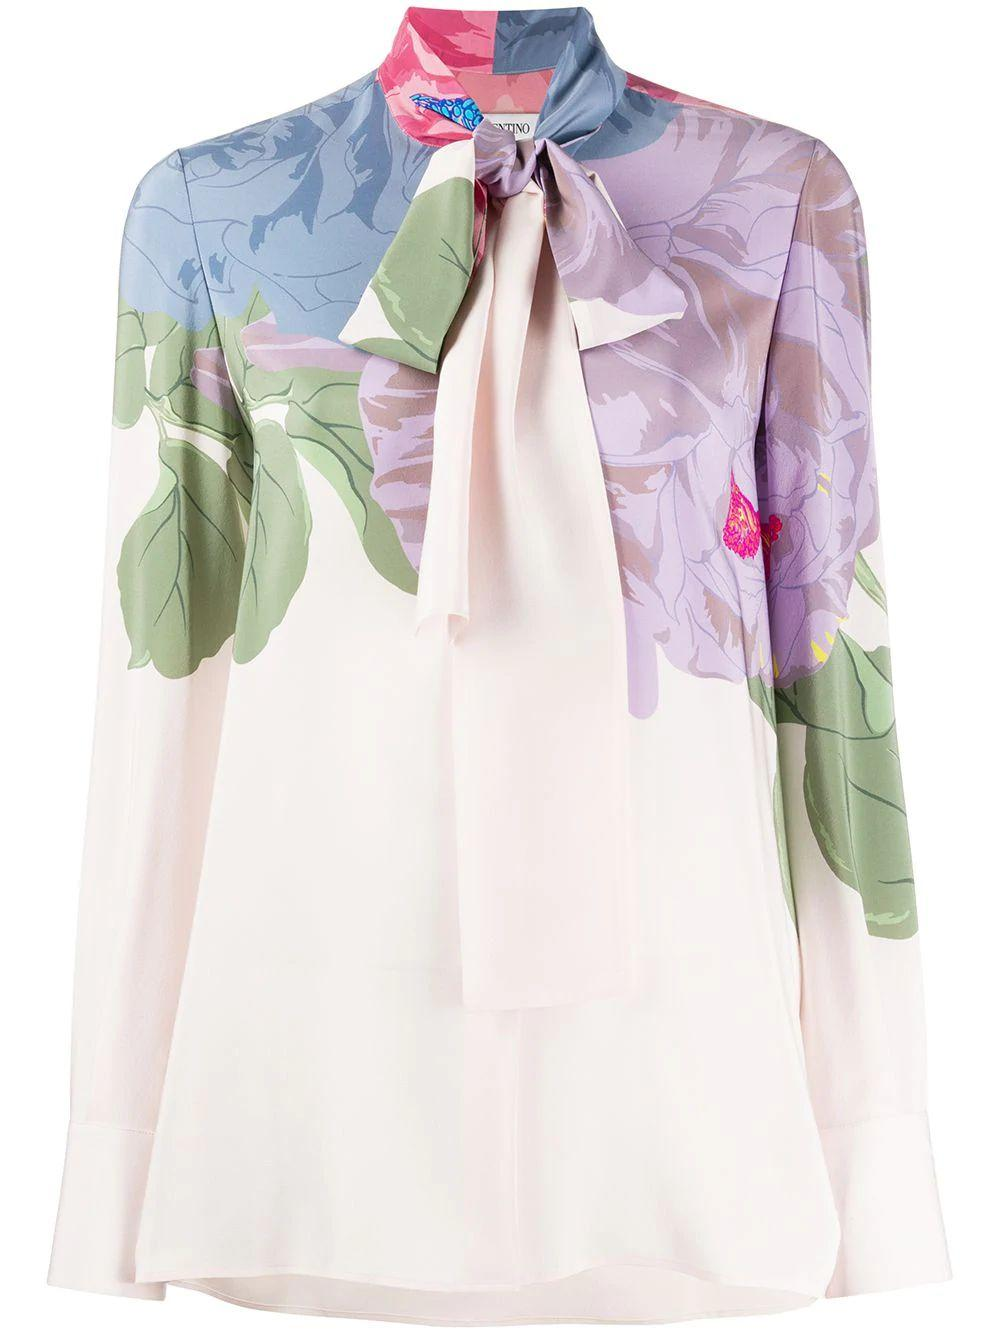 Floral Blouse With Neck Tie Item # TB3AB16G54W-C